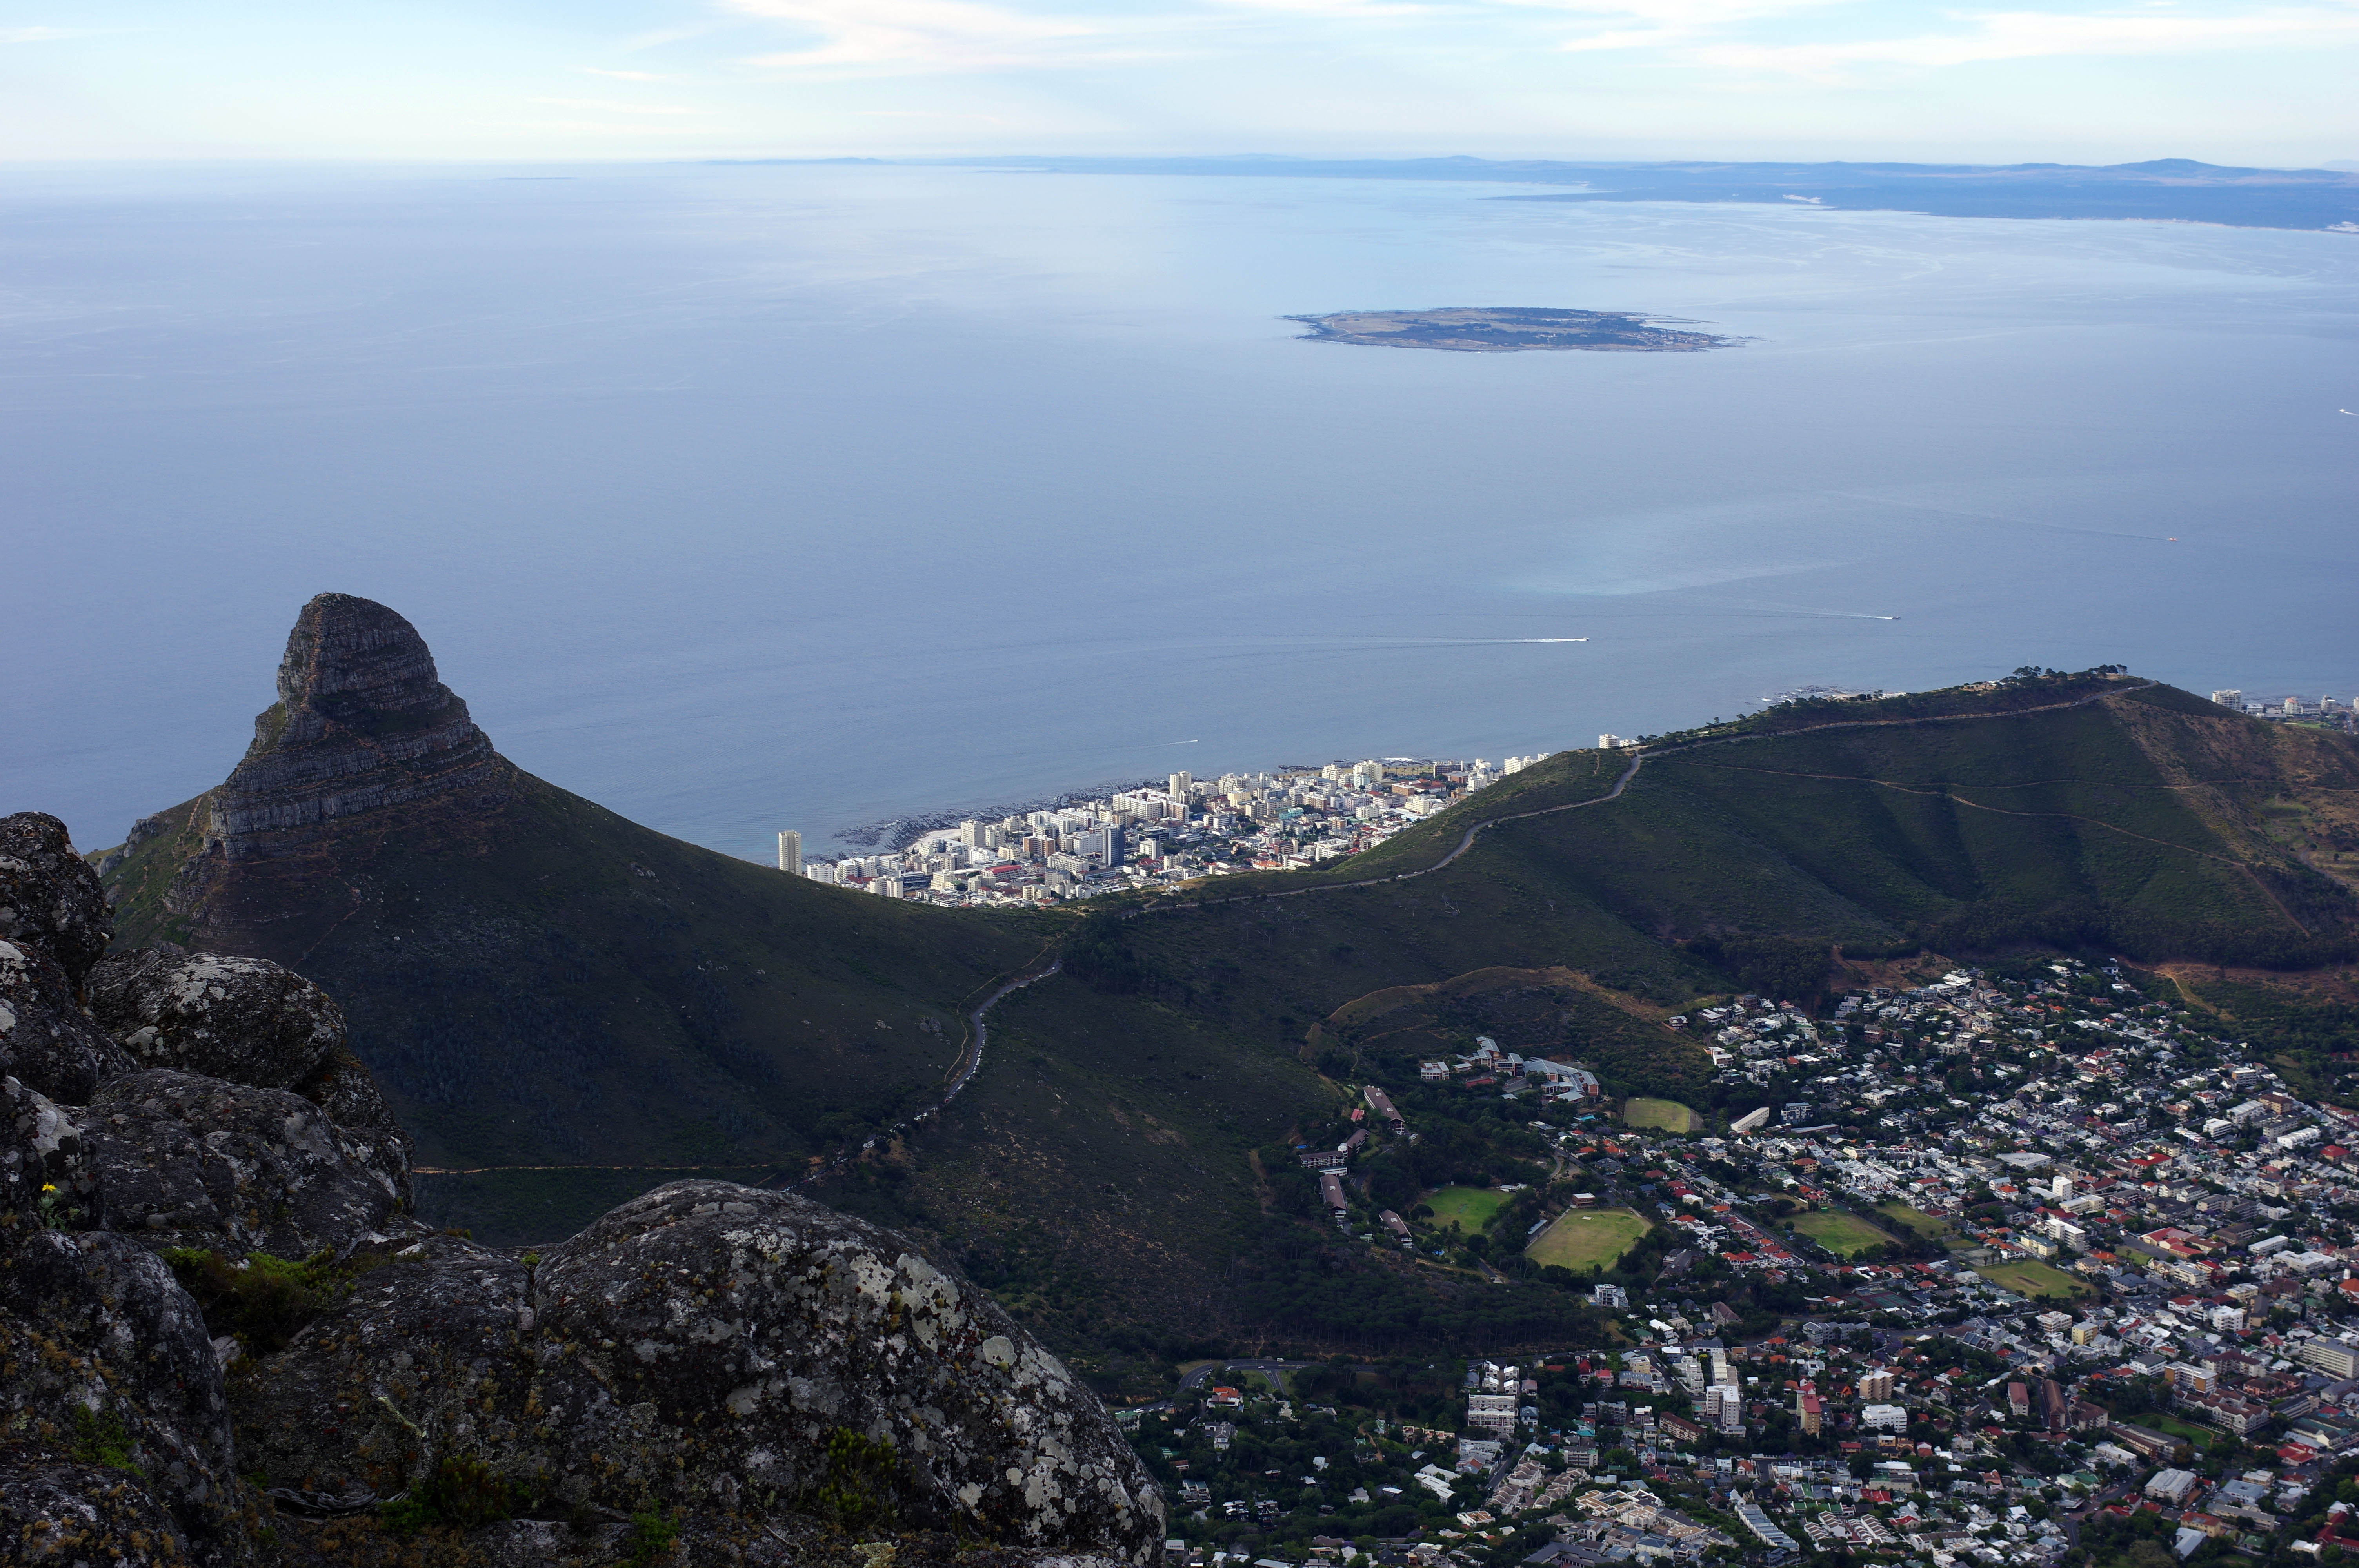 171122_CT_Table mountain12